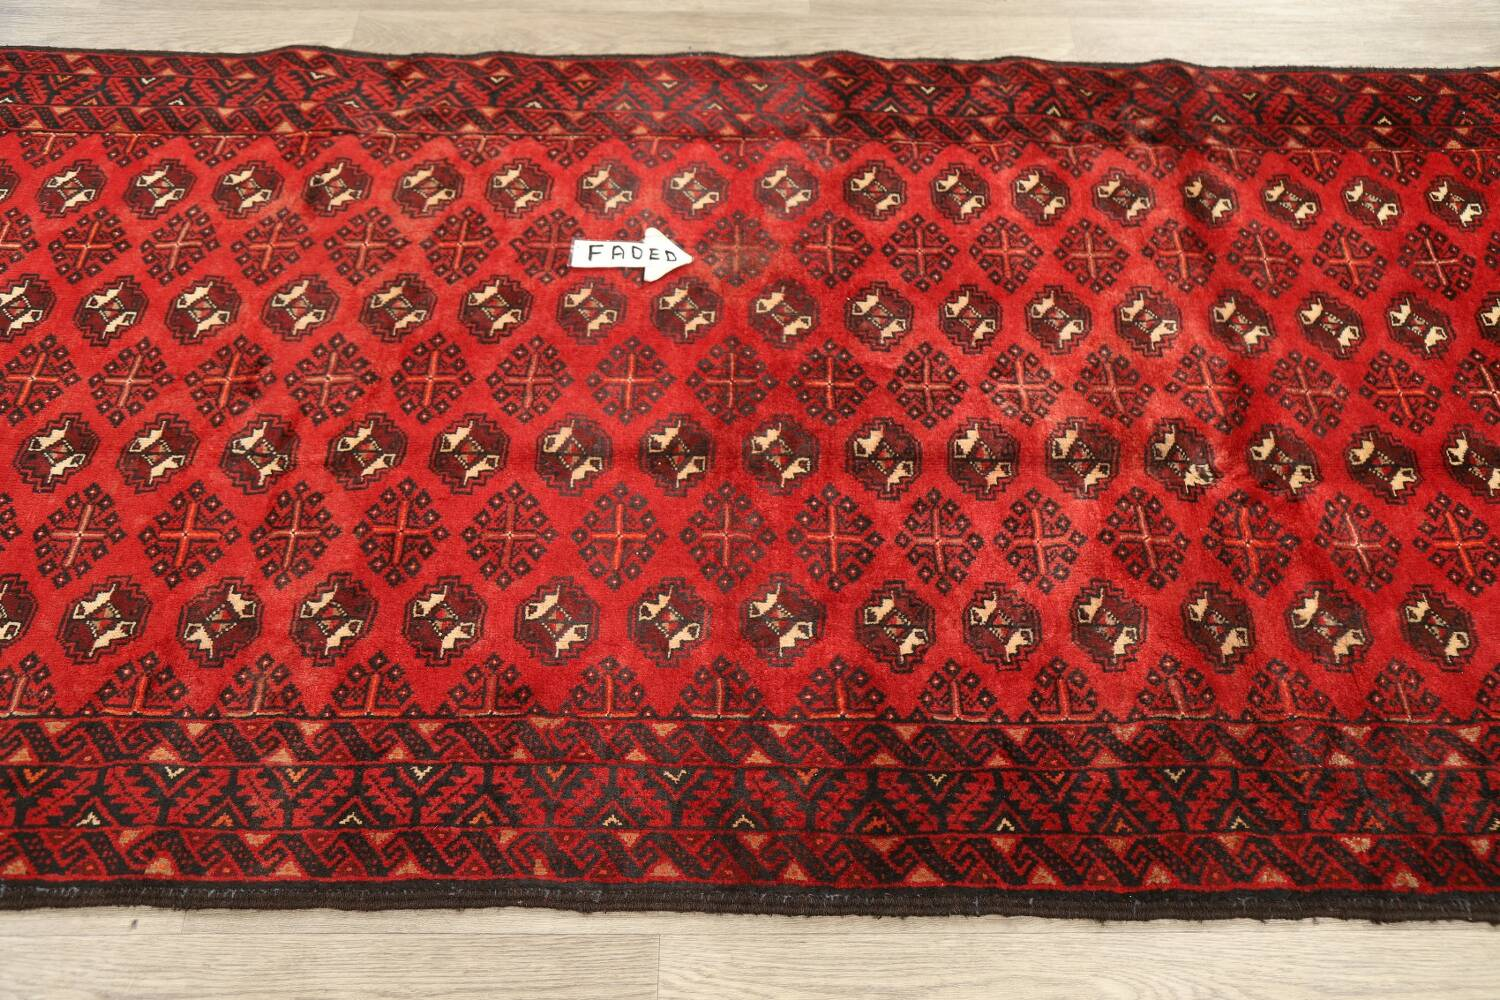 All-Over Red Geometric Balouch Persian Area Rug 4x7 image 14